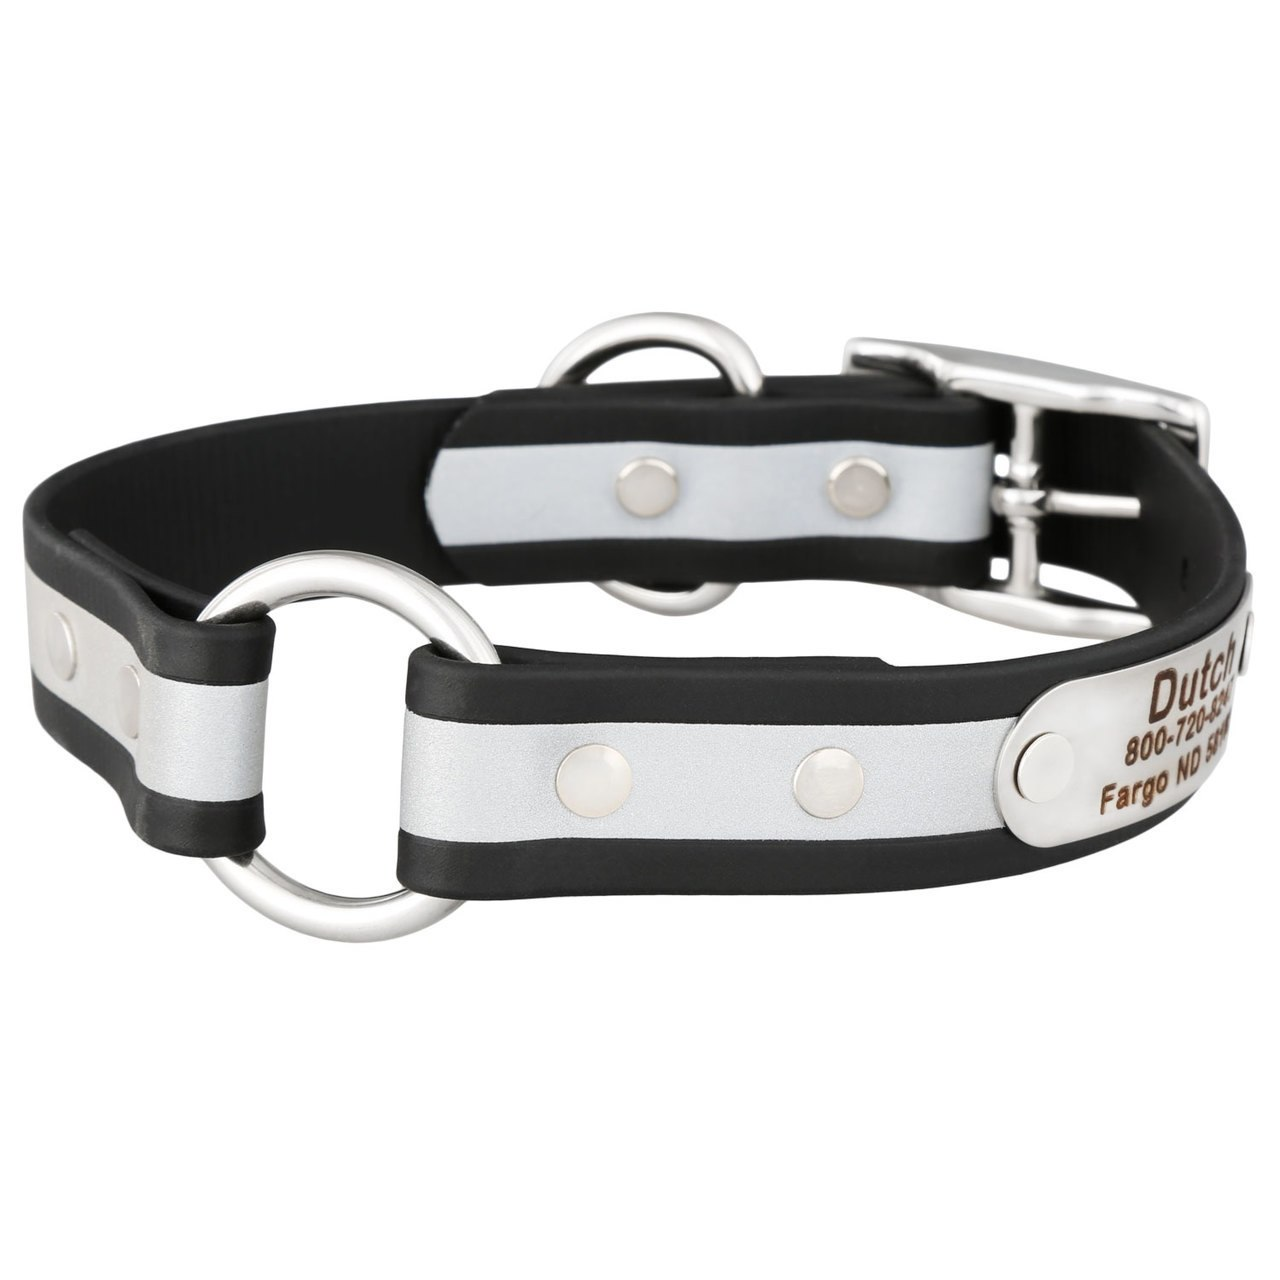 Personalized Waterproof Reflective Safety Dog Collar Black